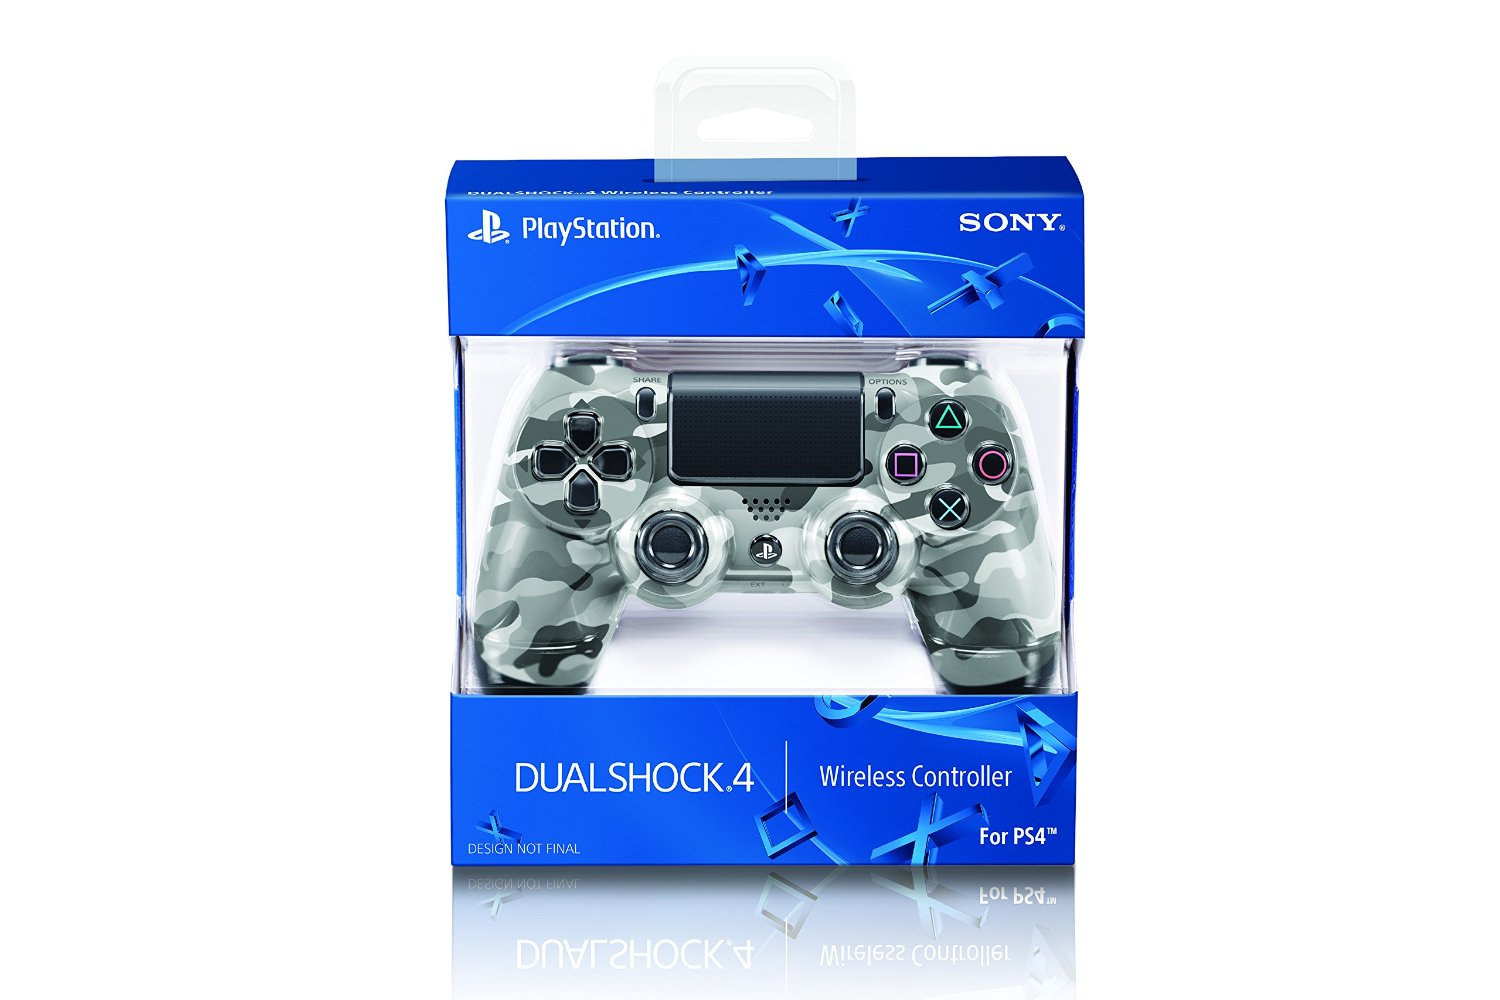 DualShock 4 Wireless Controller for PlayStation 4 - Urban Camouf